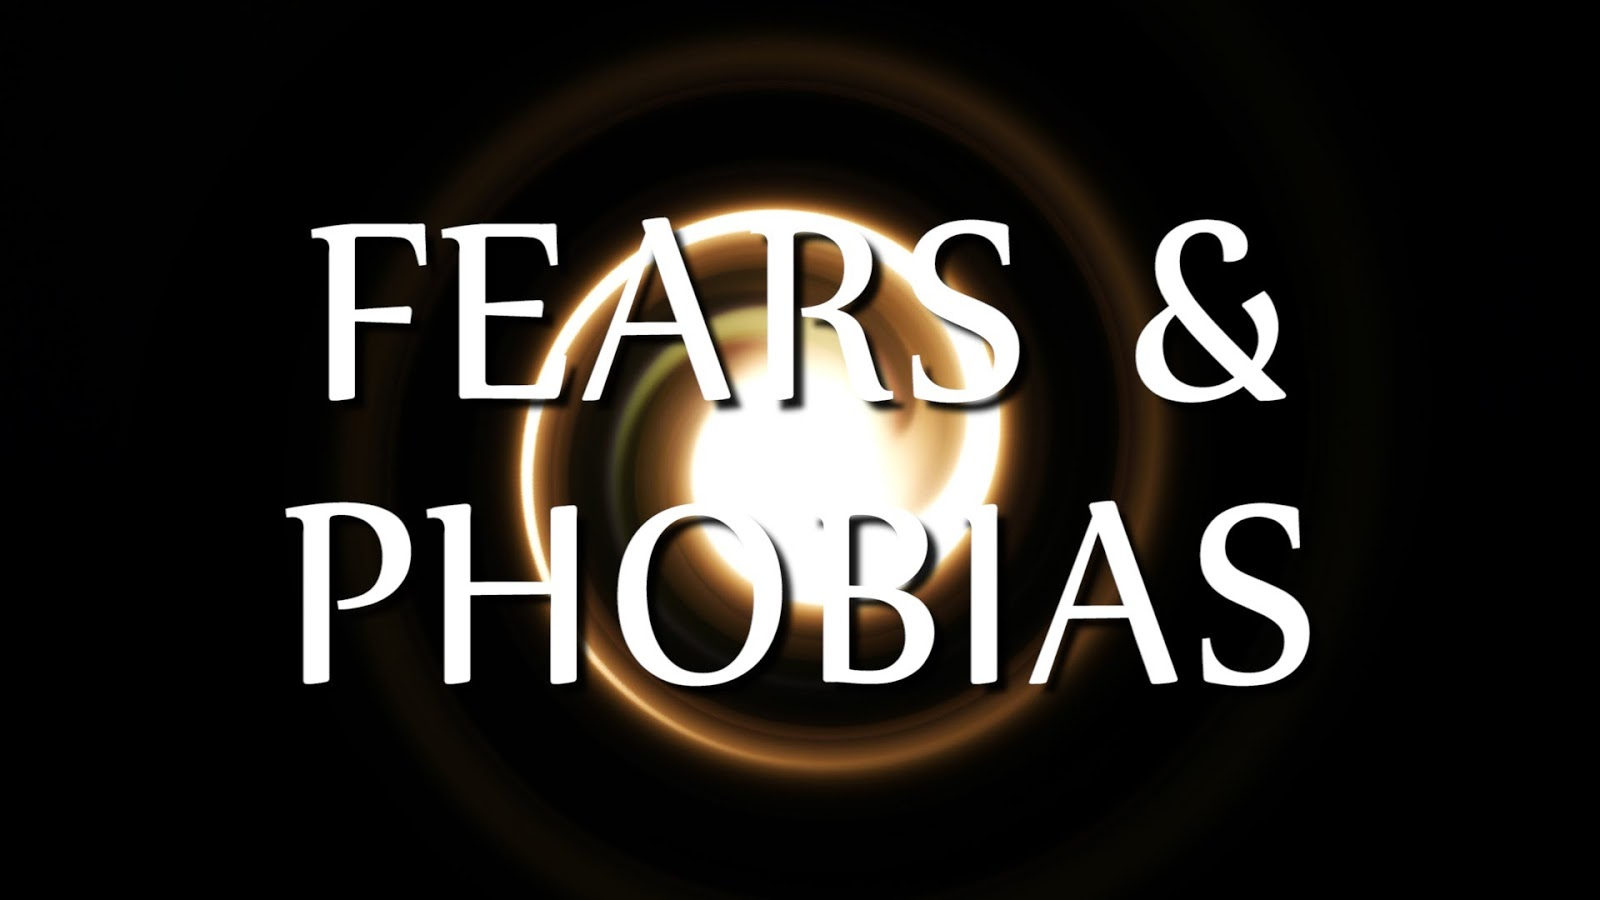 A Comprehensive List Of Phobias And Their Meanings